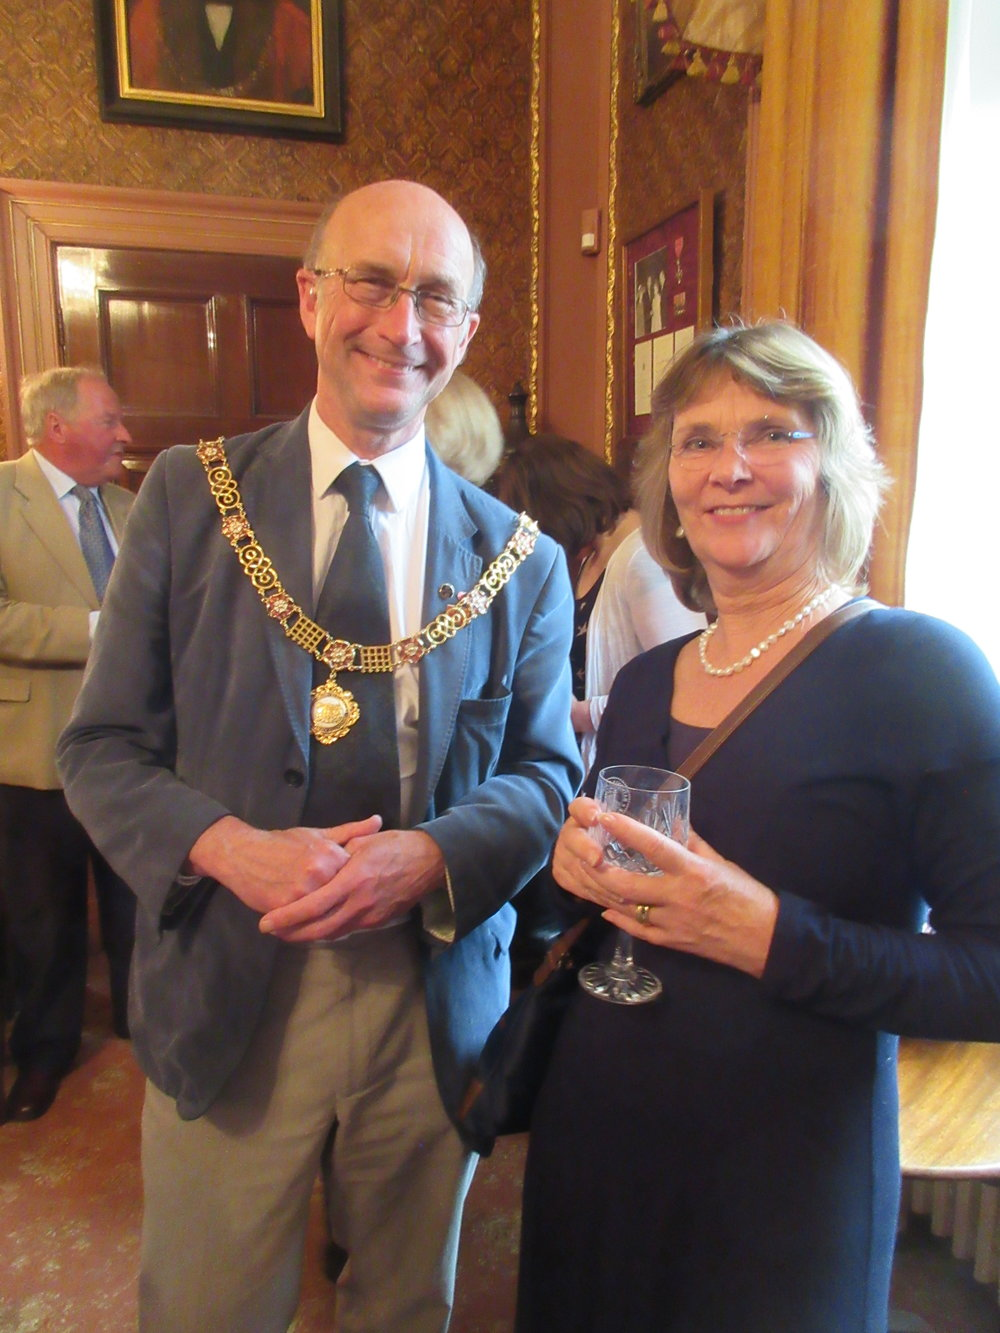 The Mayor of Bath with Next Stage actor and director Alison Paine